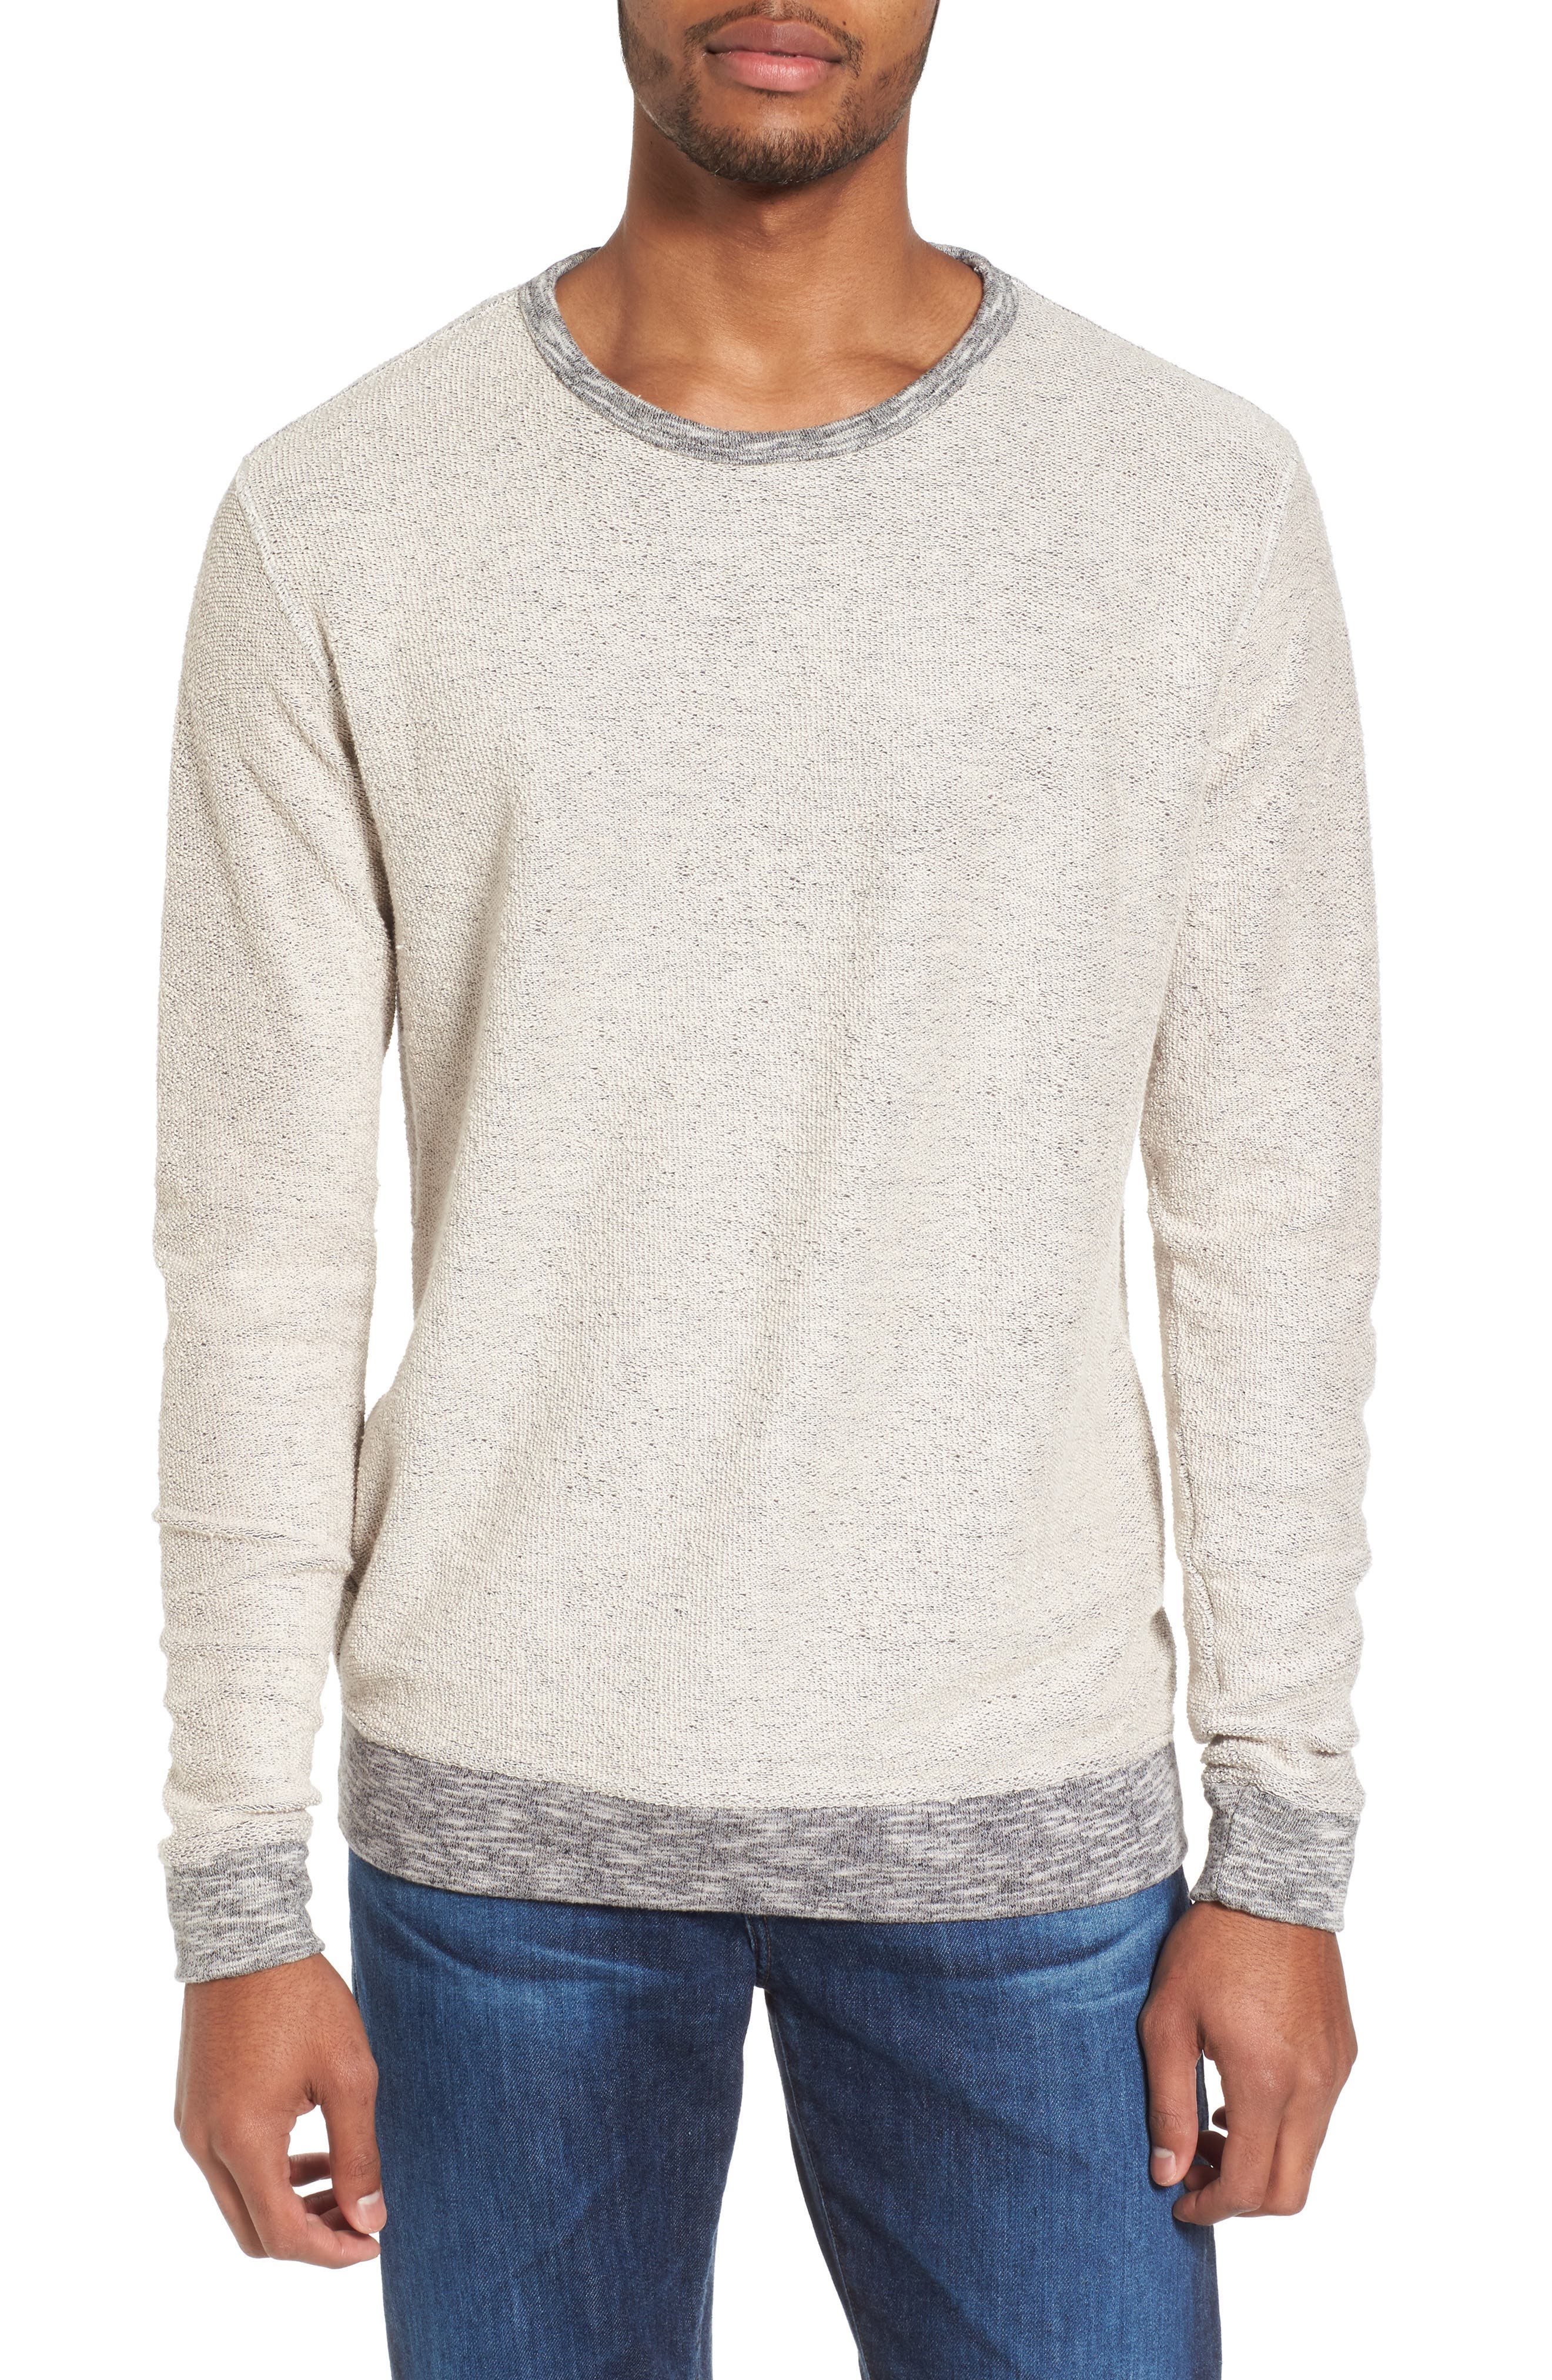 Reverse French Terry Sweatshirt,                             Main thumbnail 1, color,                             Grey